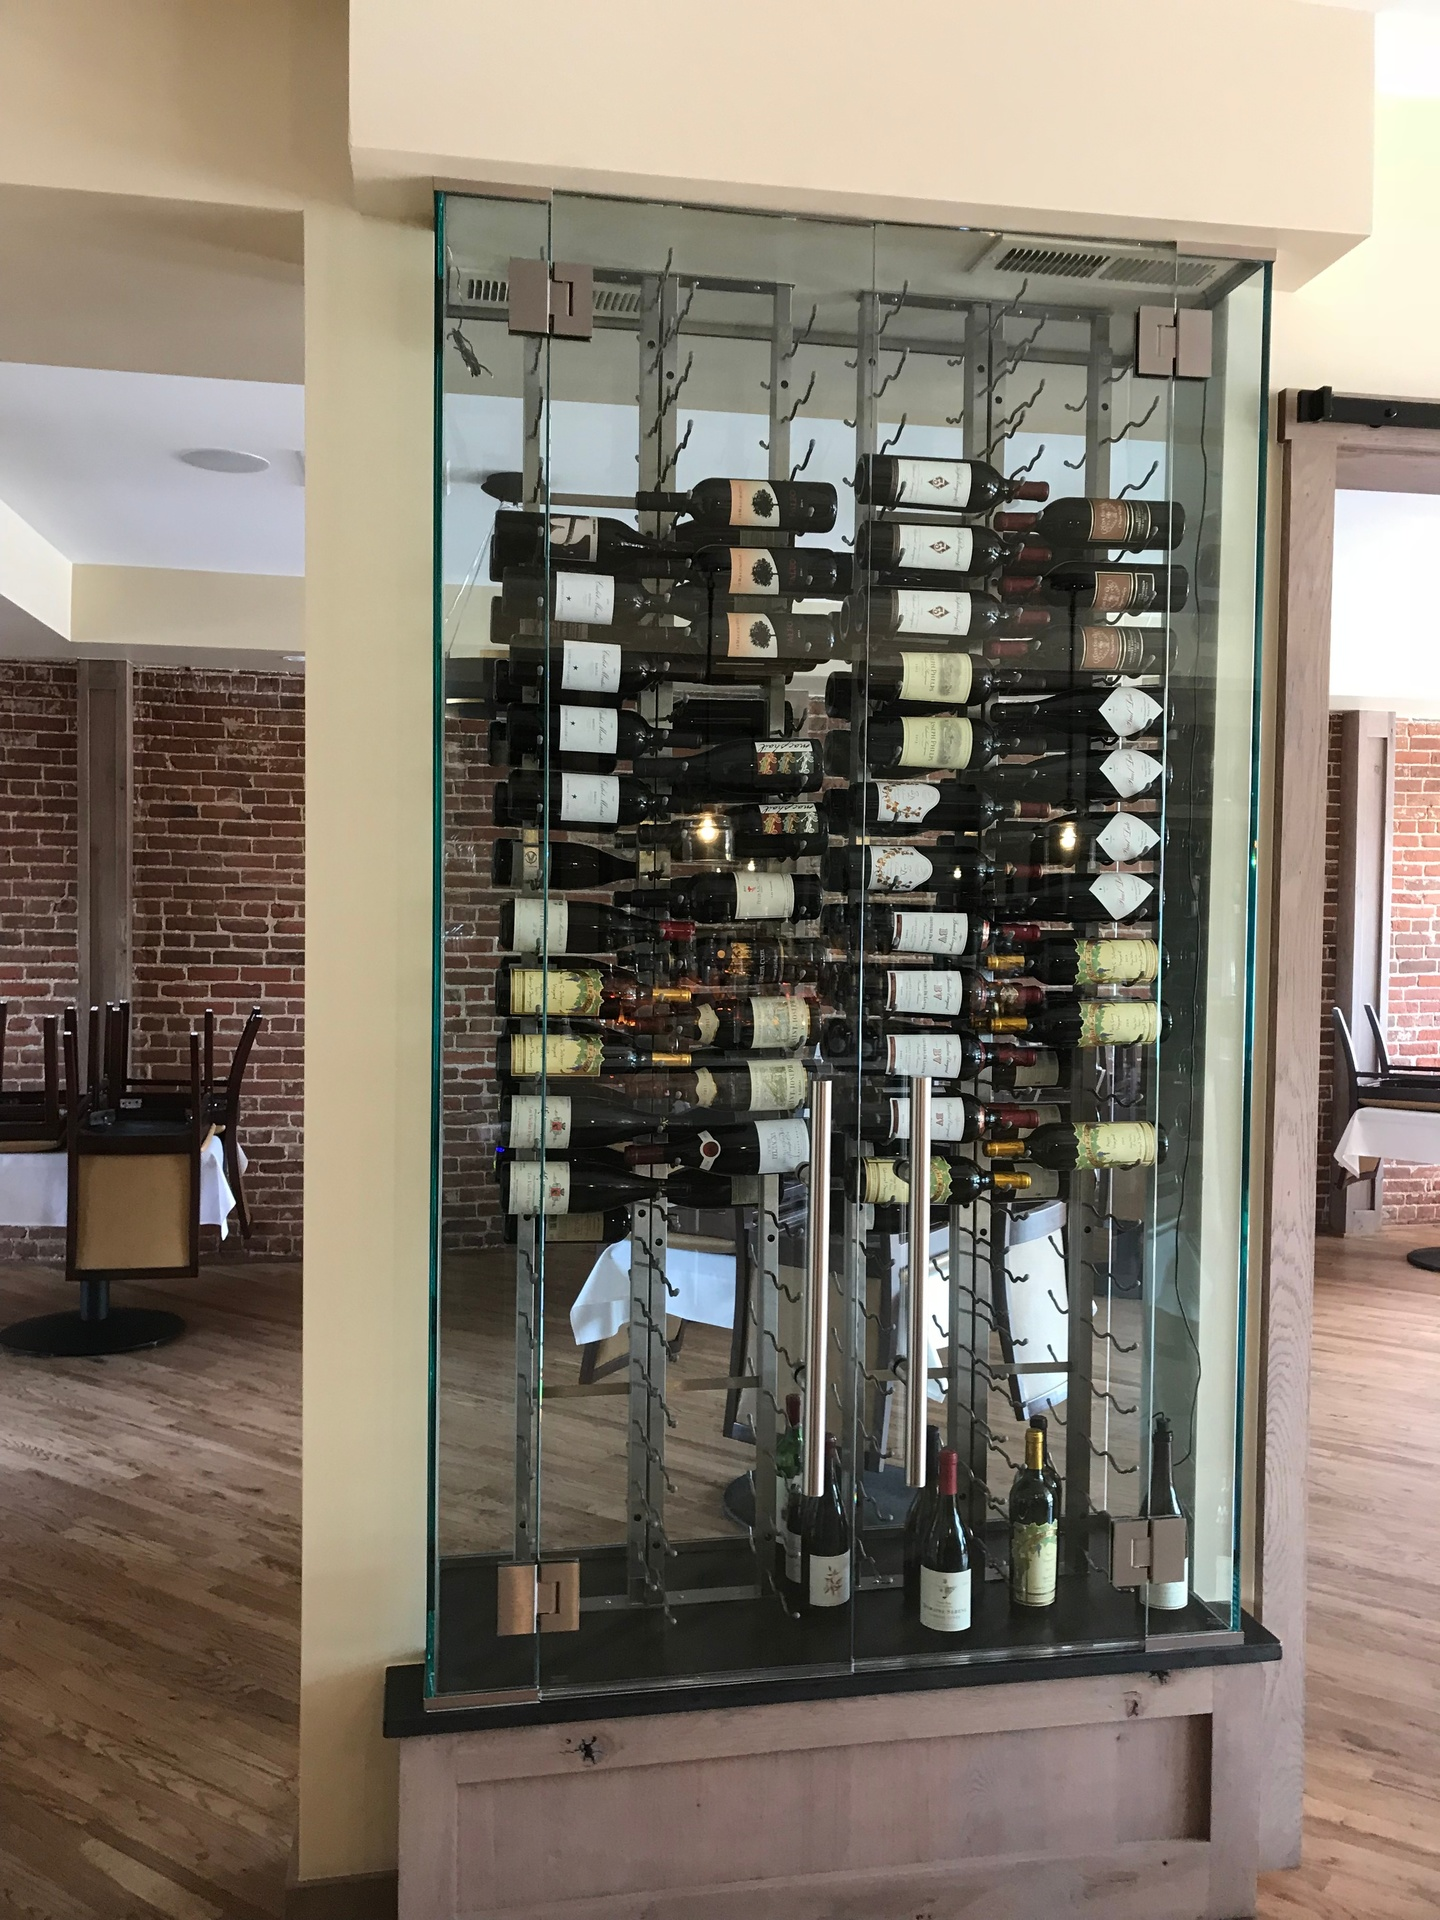 DGI measures, cuts, and installs glass tables, shelves, and mirrors to create glass elegance for any location.